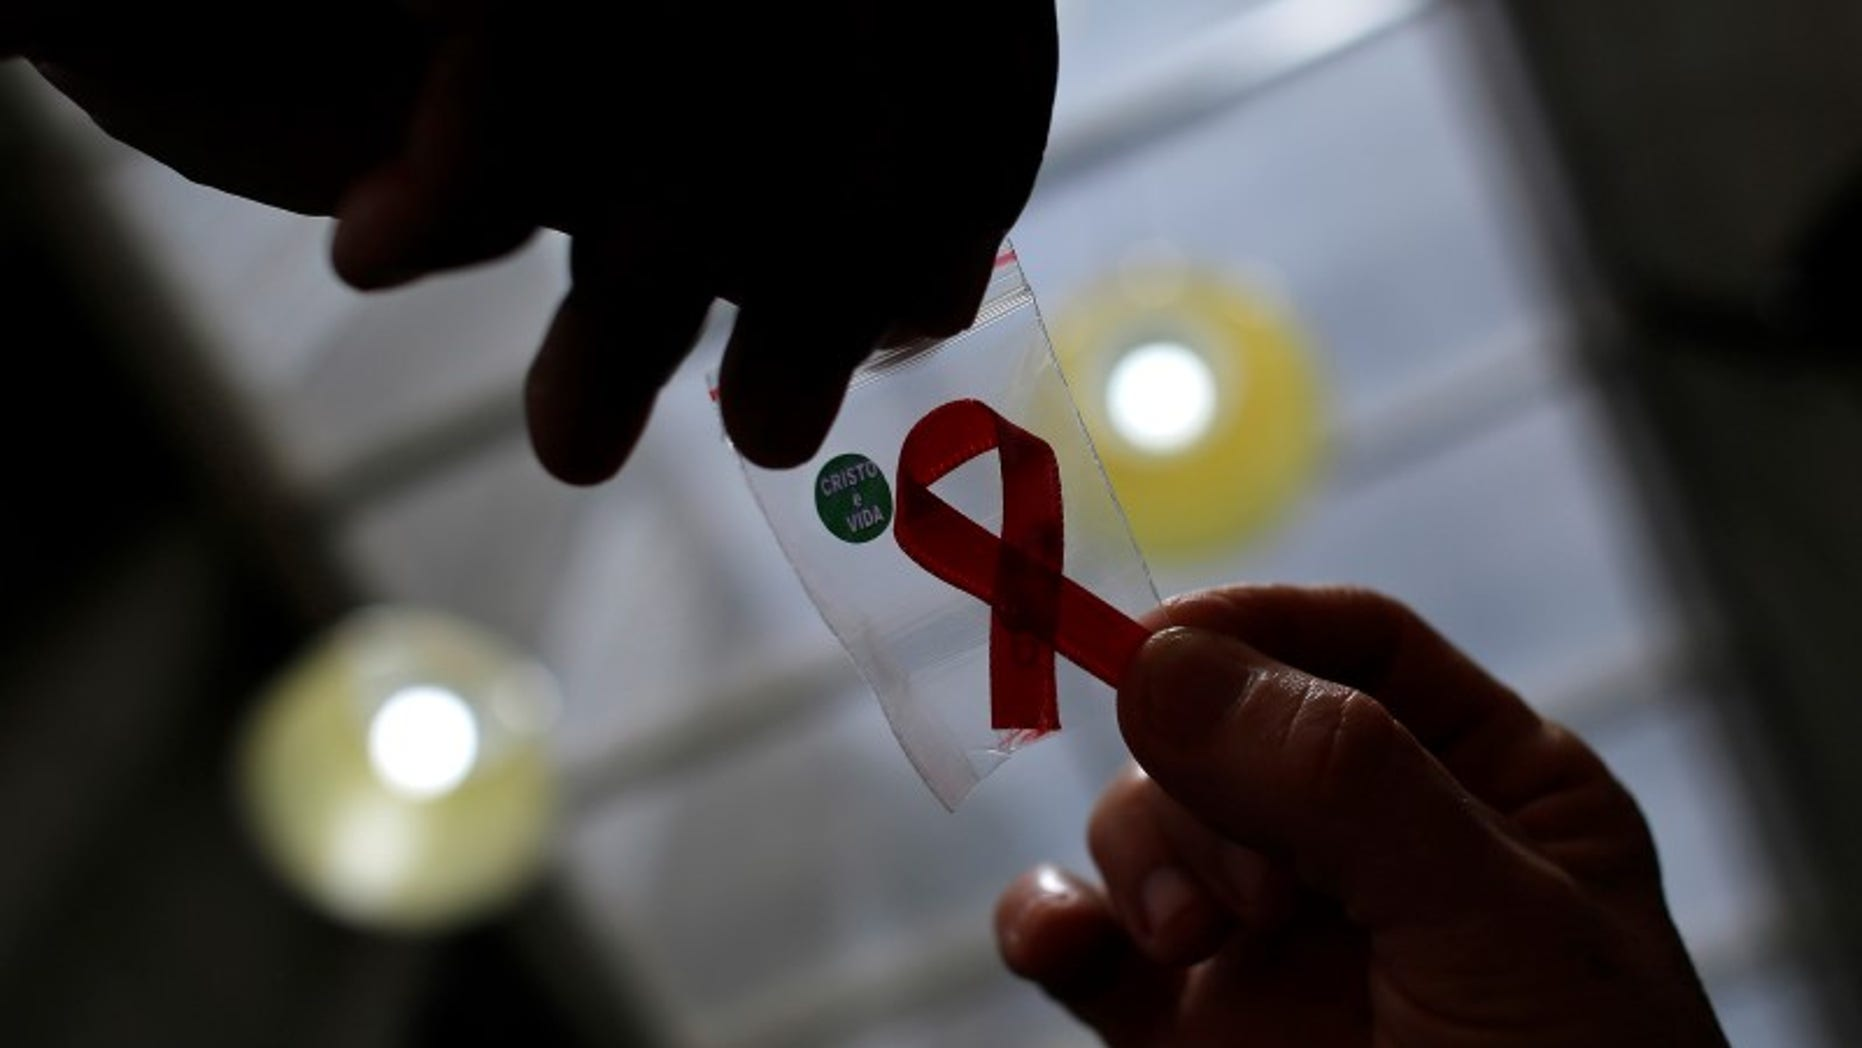 Nurse gives a red ribbon to a woman to mark World Aids Day at the entrance of Emilio Ribas Hospital, in Sao Paulo